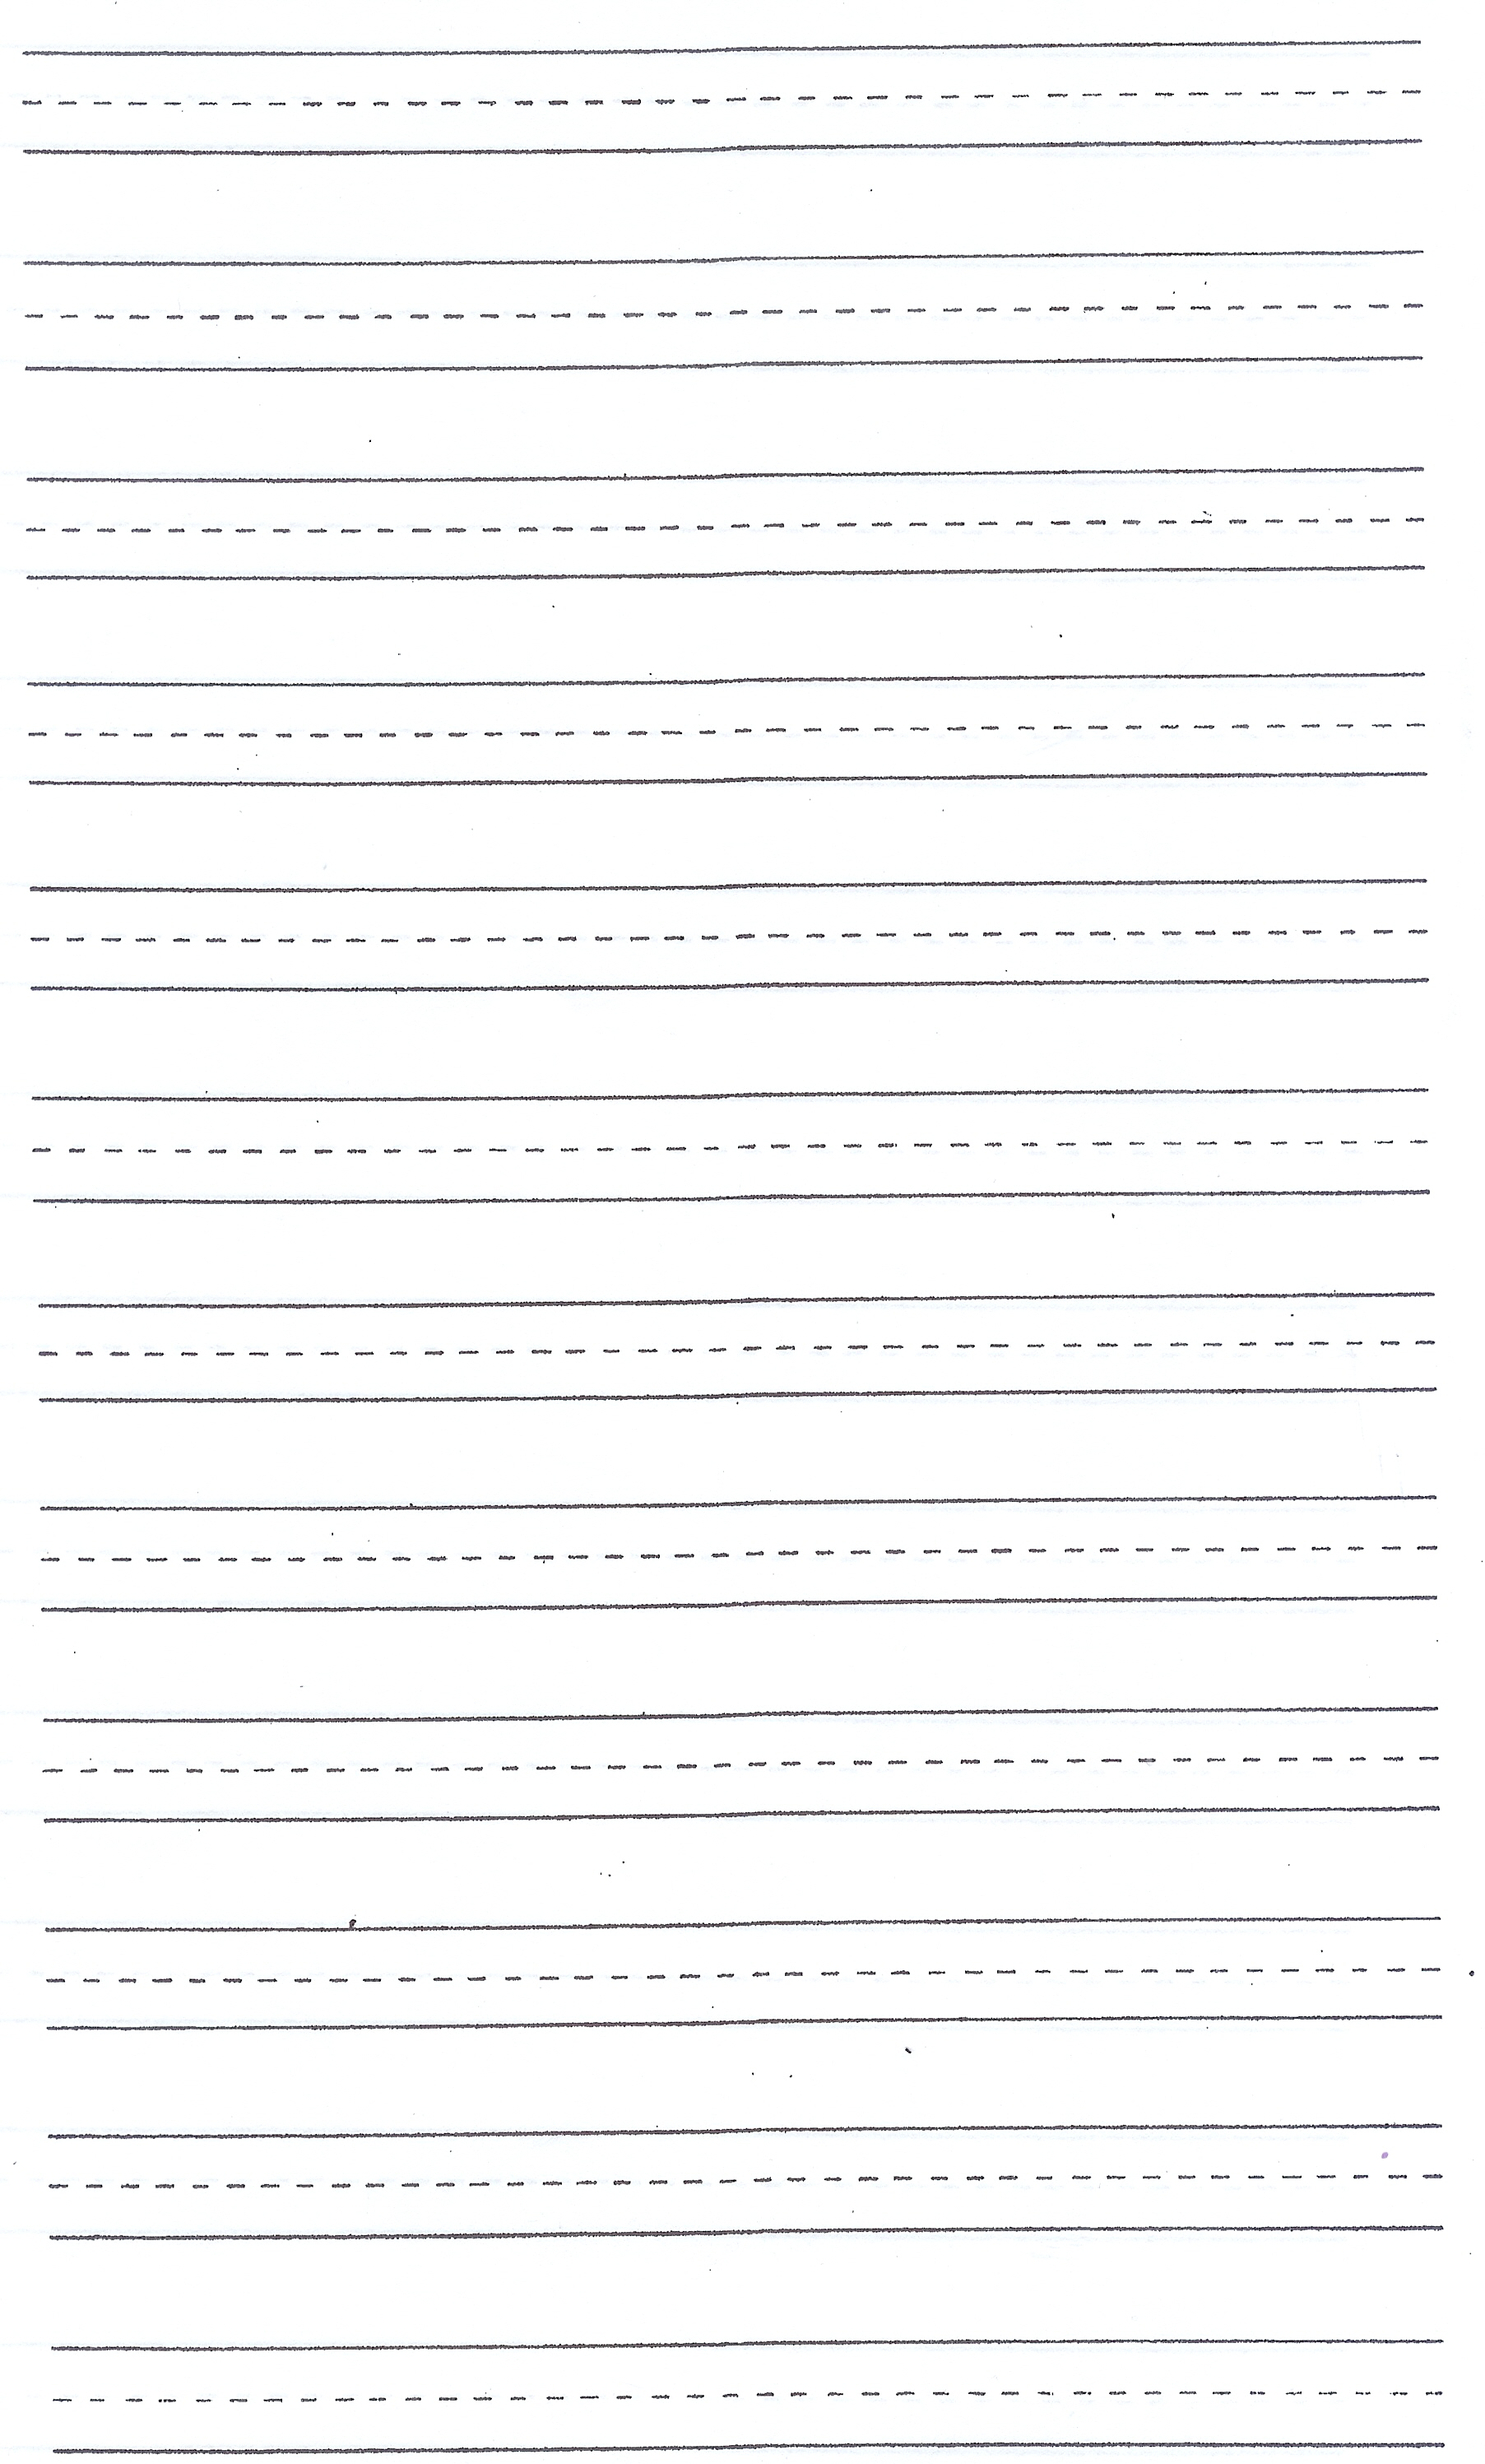 Free Writing Paper For First Grade